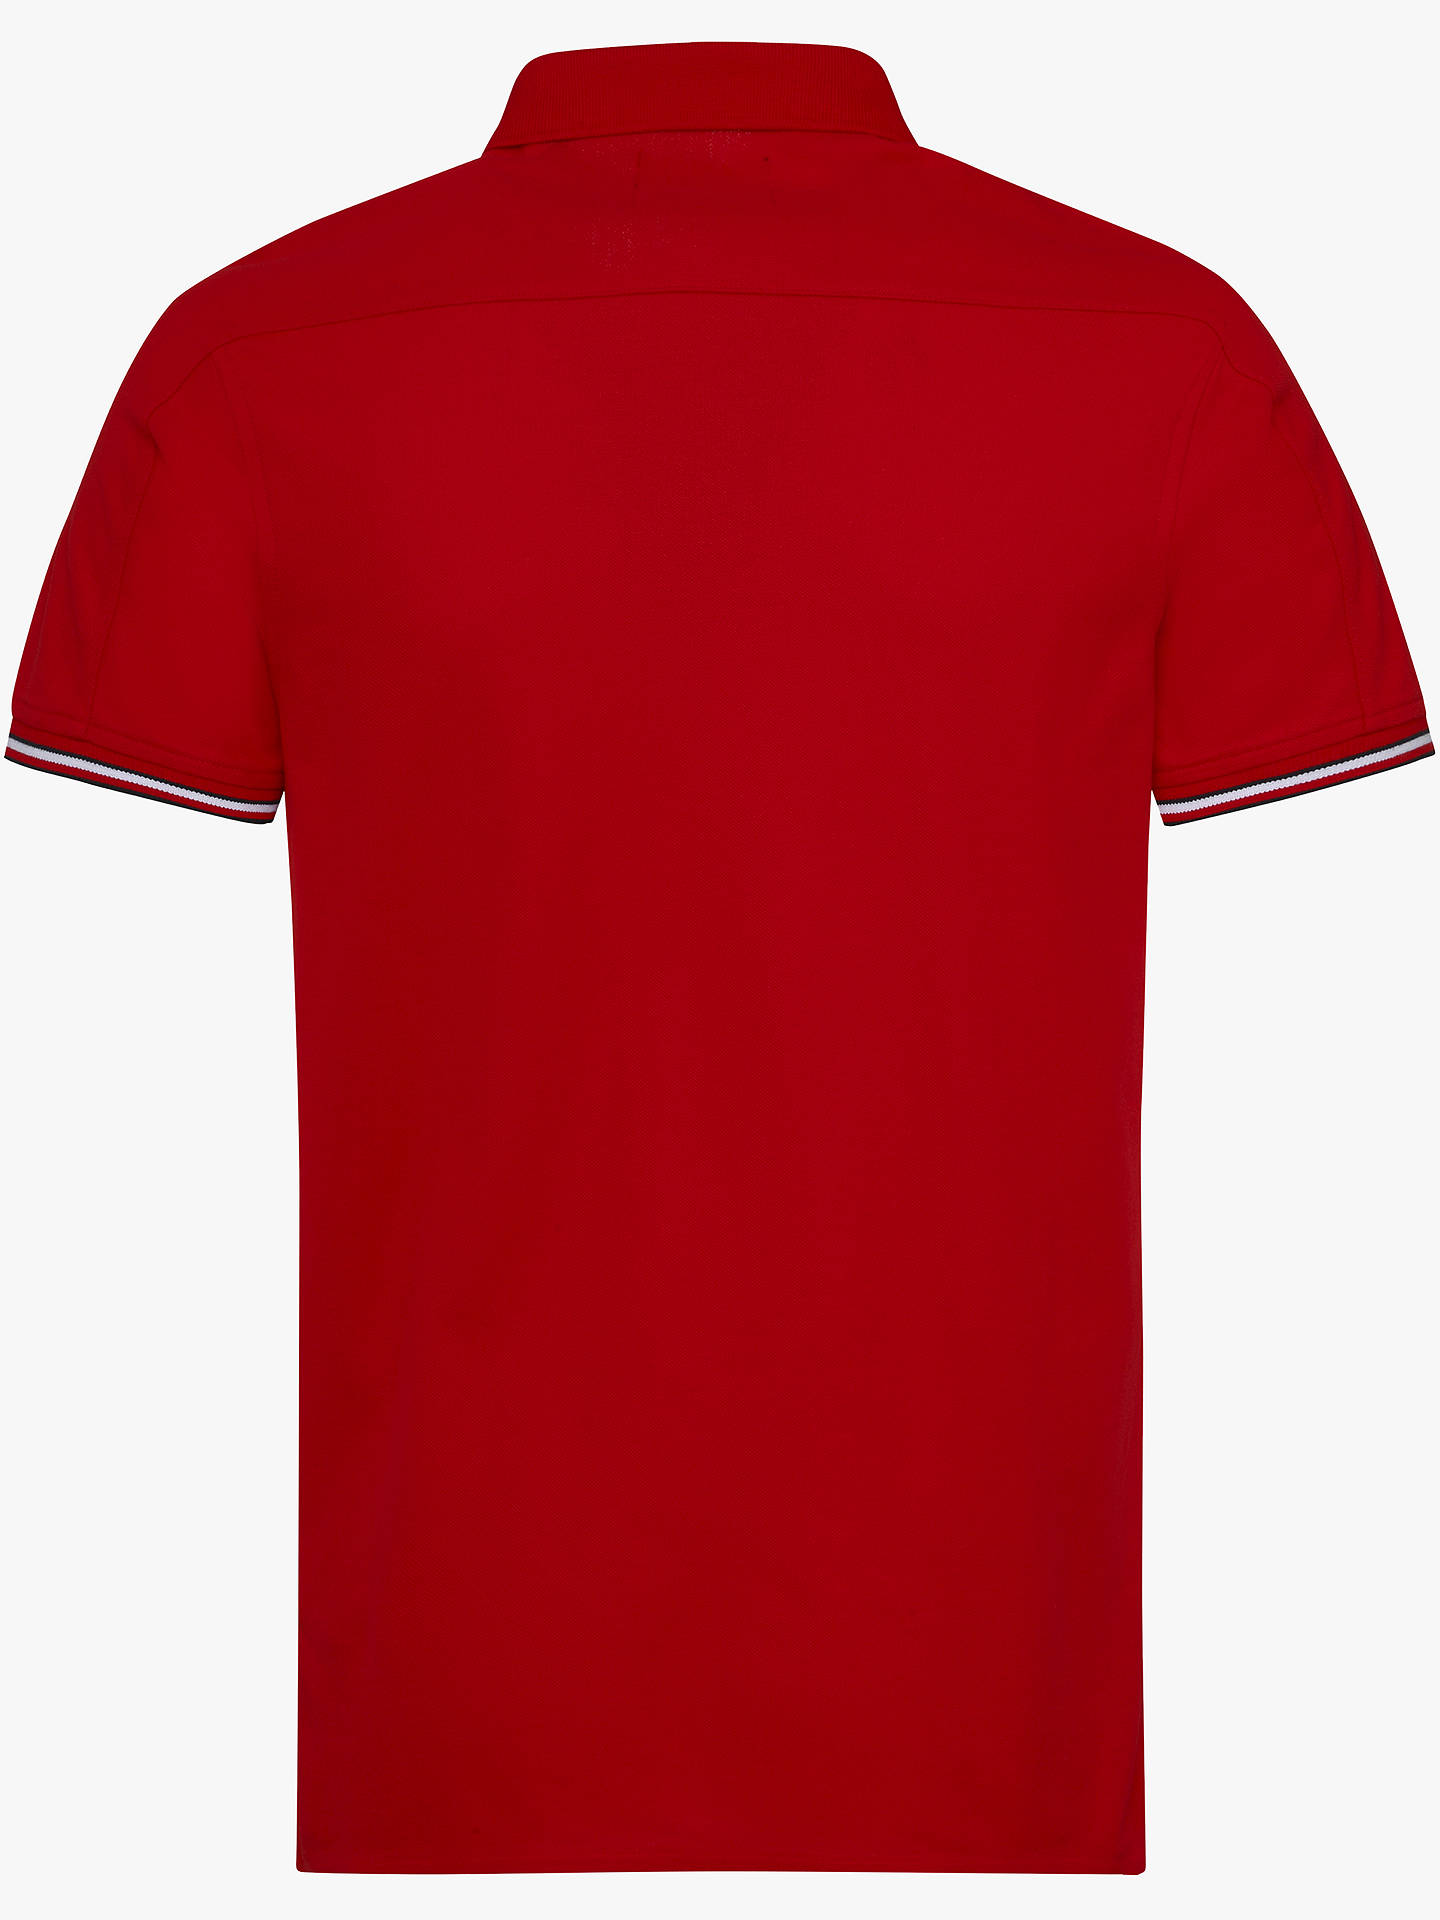 Tommy Hilfiger Red Cotton Polo T Shirt Dress S 100% Cotton